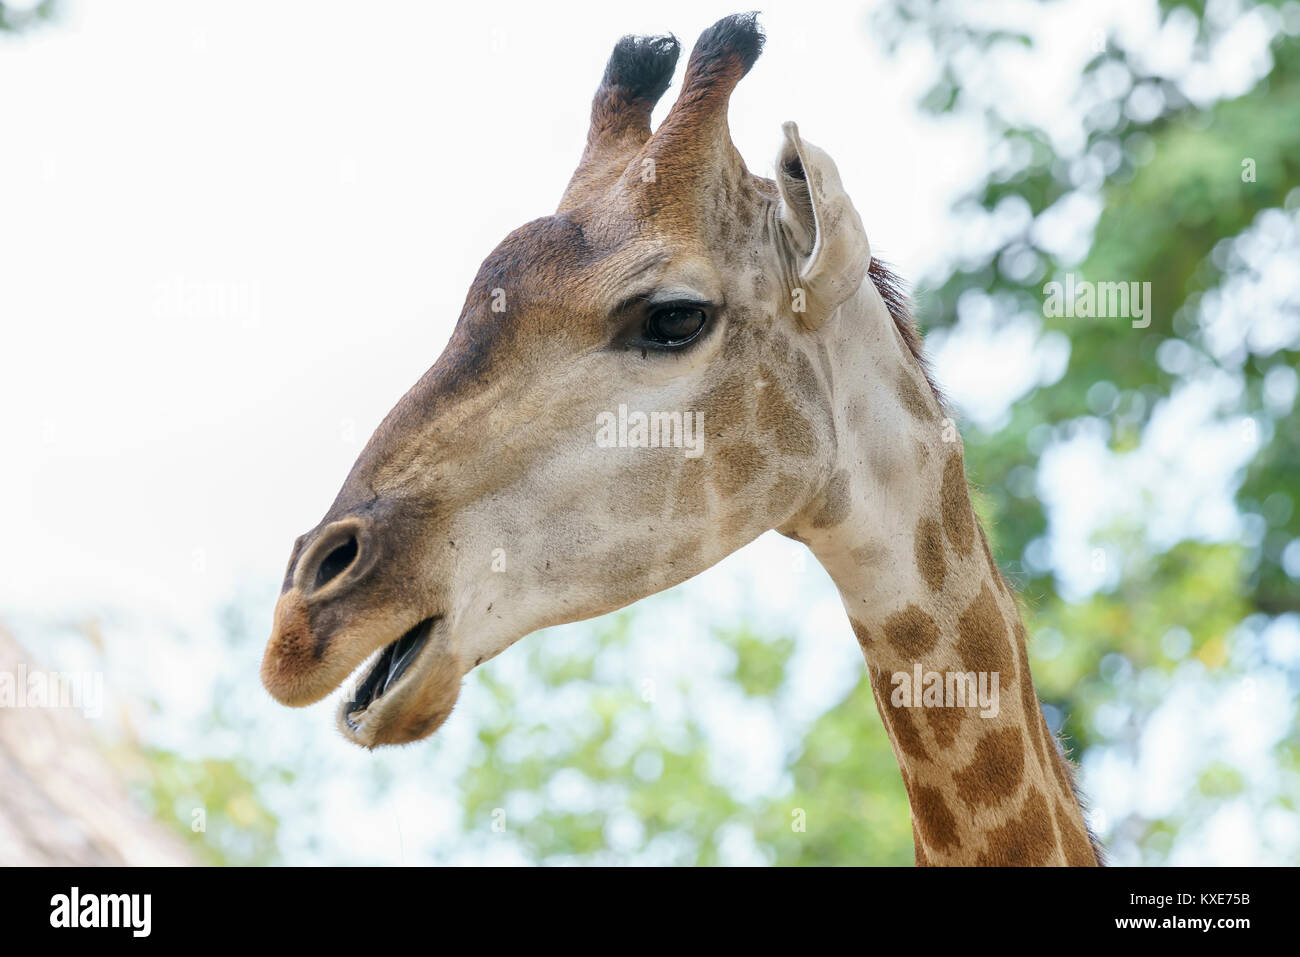 Portrait of a giraffe with long neck and funny head helps the animal find food on the tall branches to help them - Stock Image